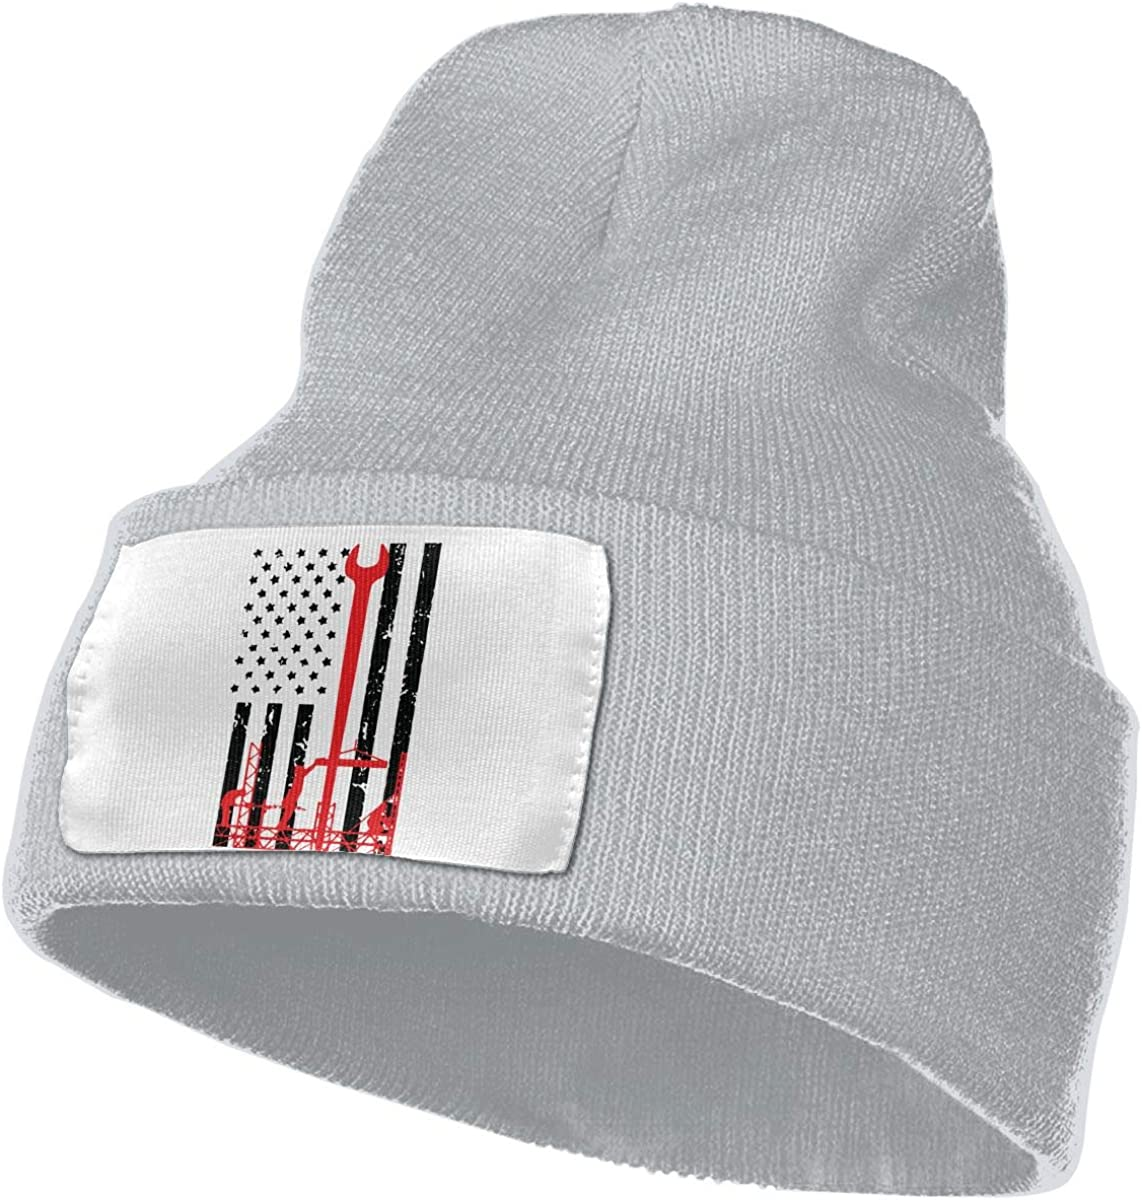 TAOMAP89 Ironworker America Flag Women and Men Skull Caps Winter Warm Stretchy Knitting Beanie Hats